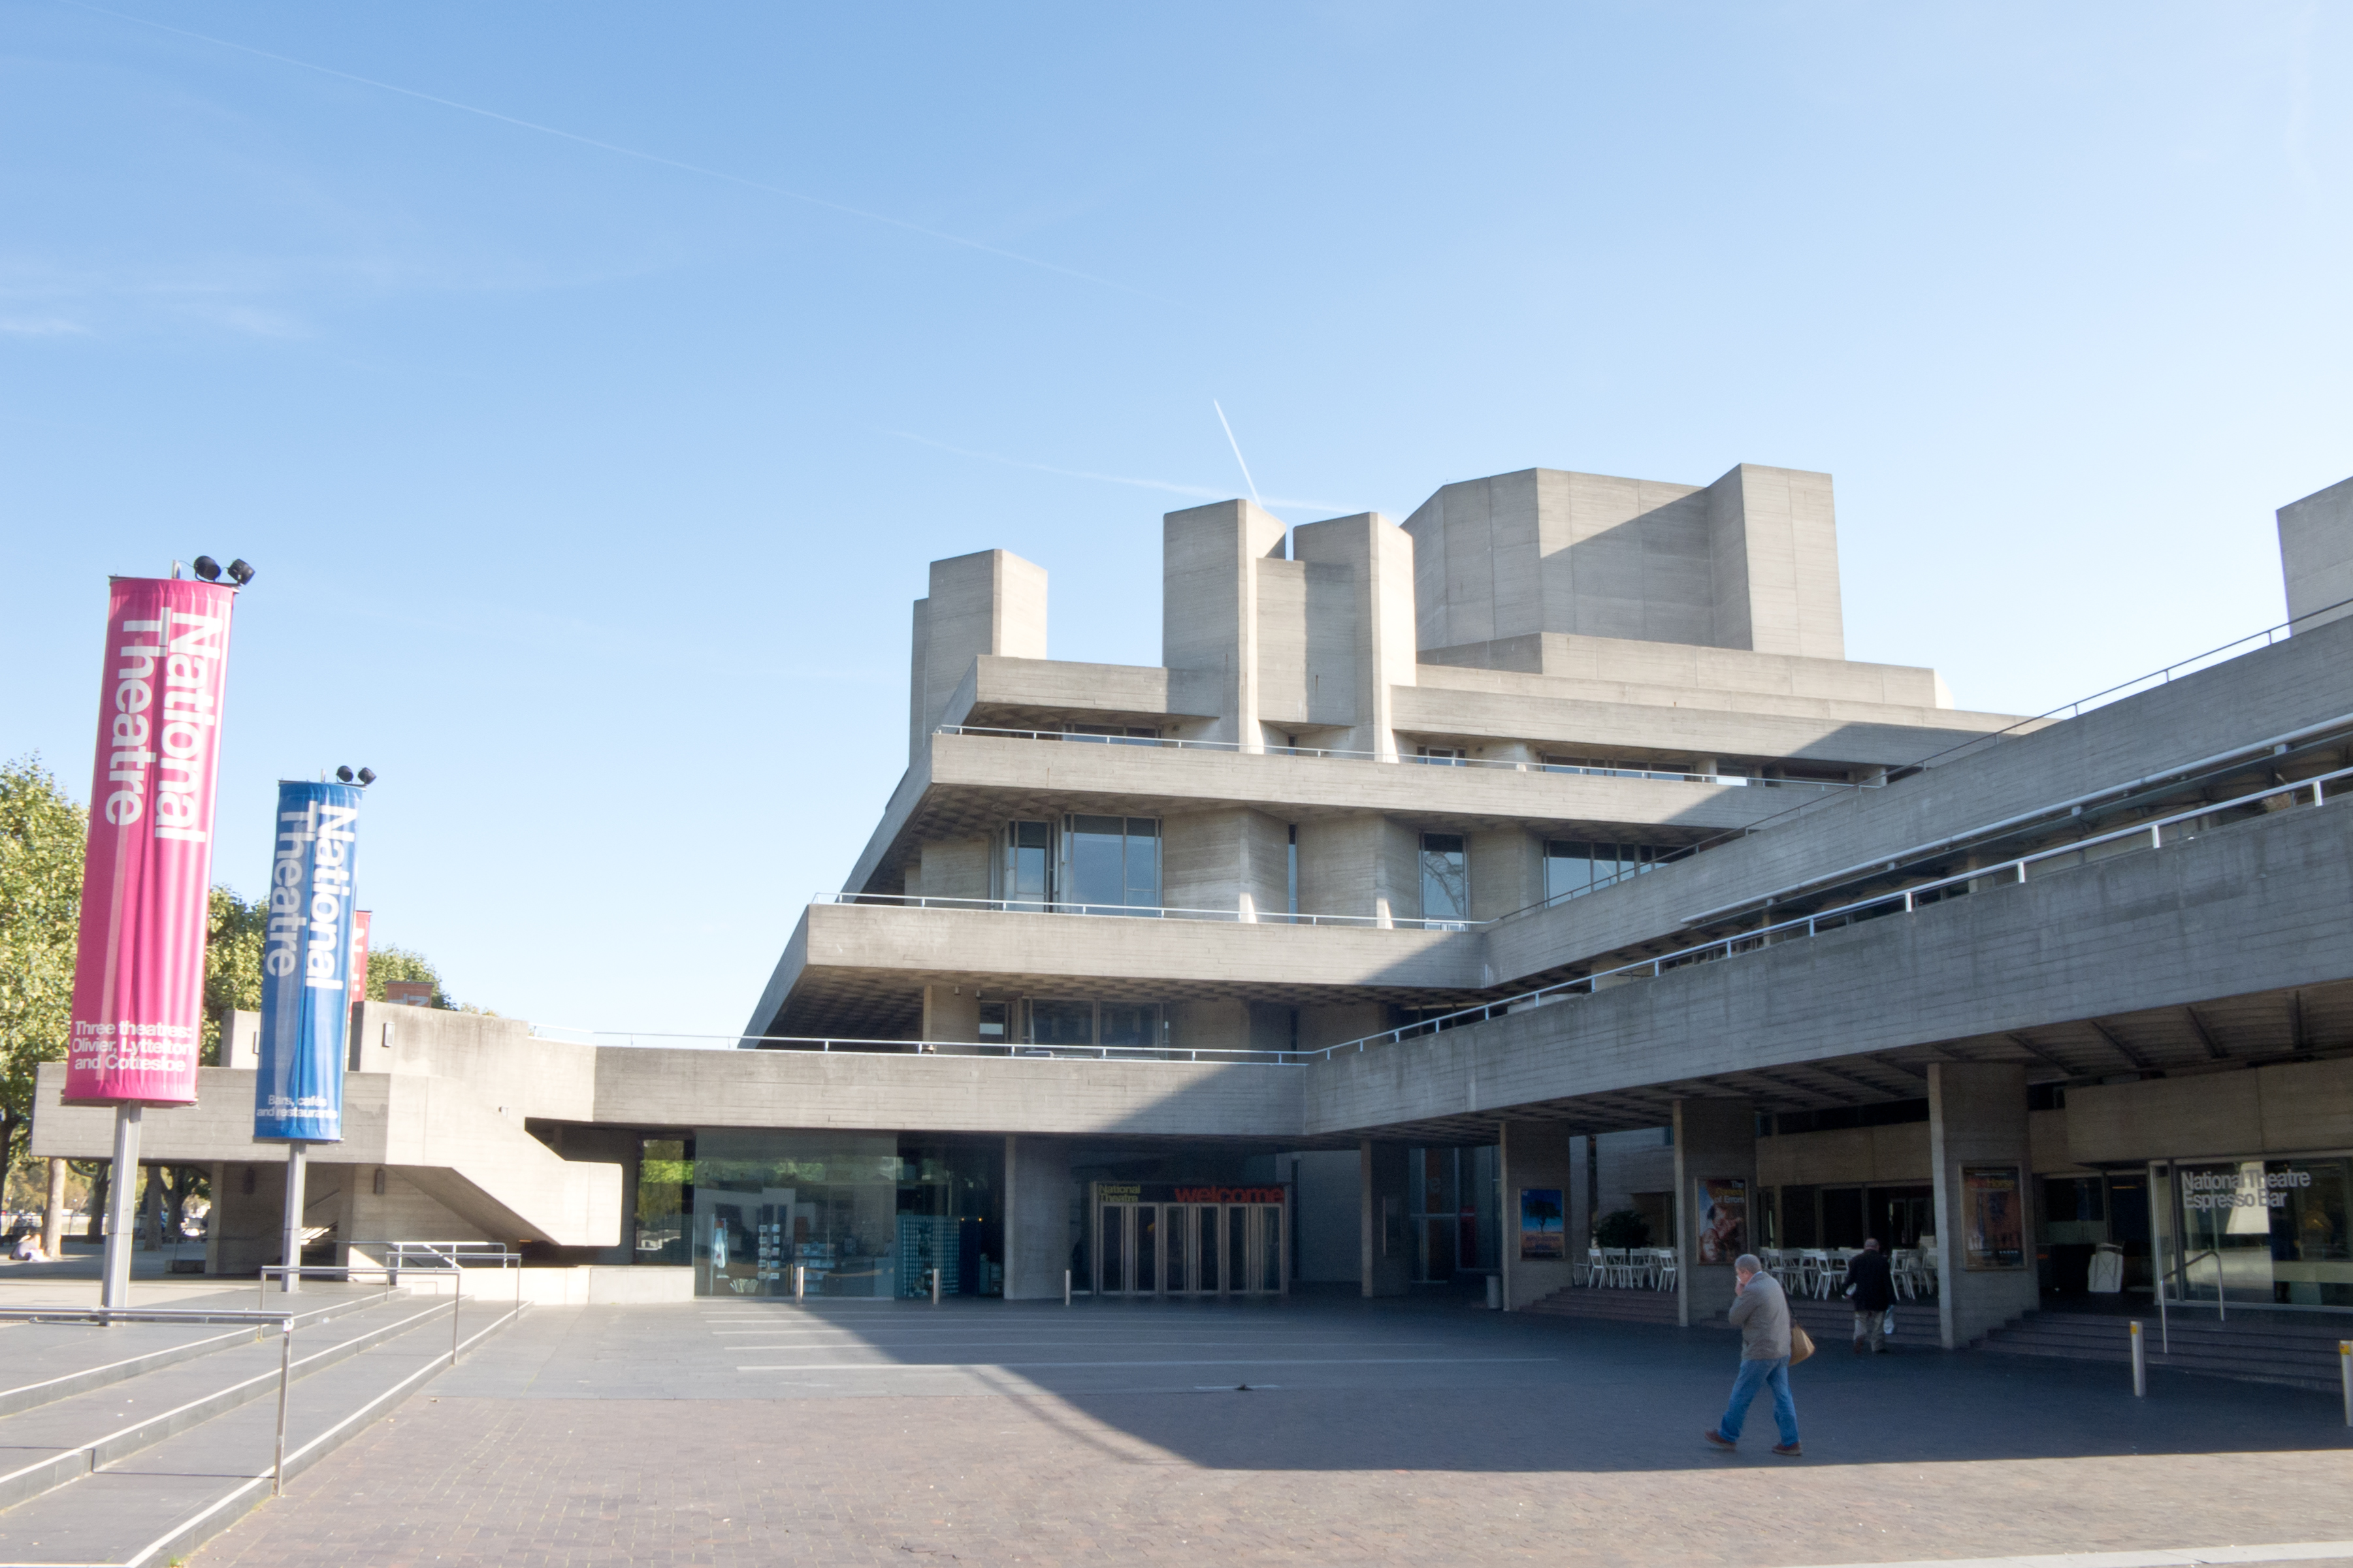 The National Theatre On Tour